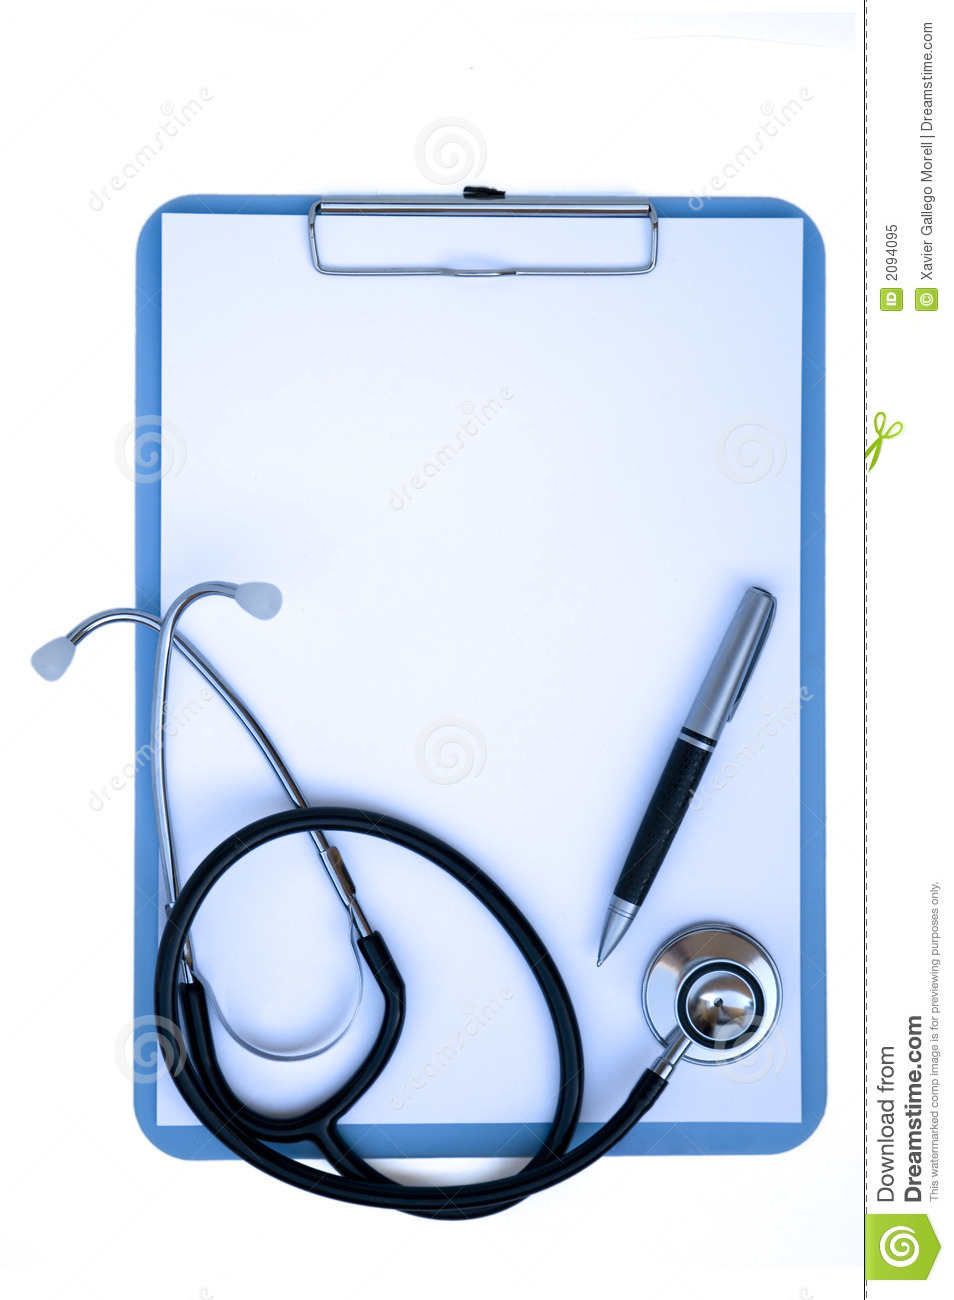 Free Heart Stethoscope Clipart